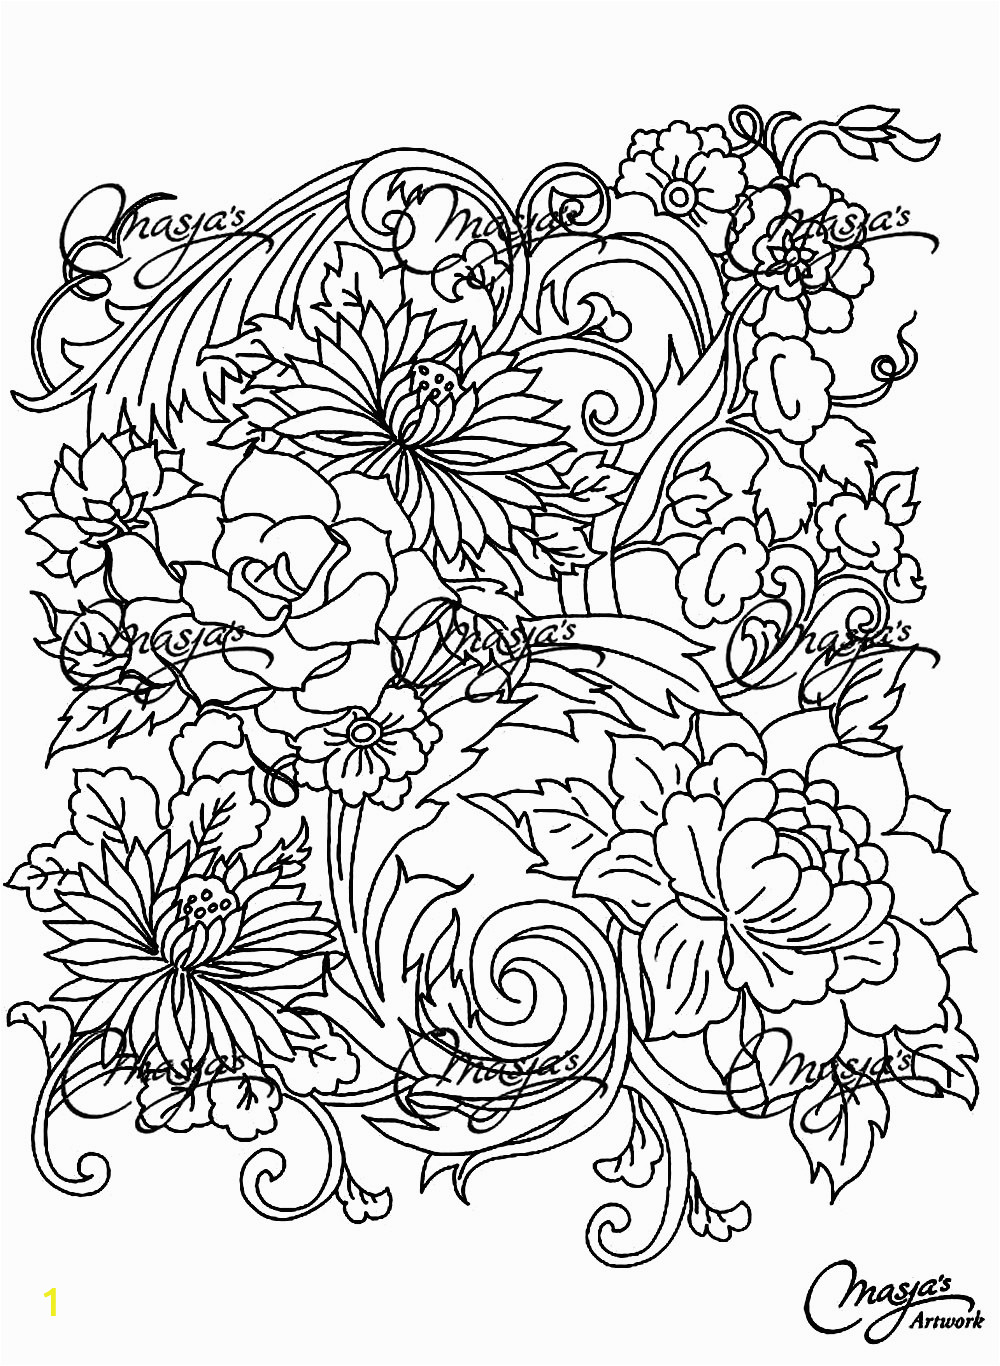 image=fleurs et ve ation coloring adult drawing flower 1